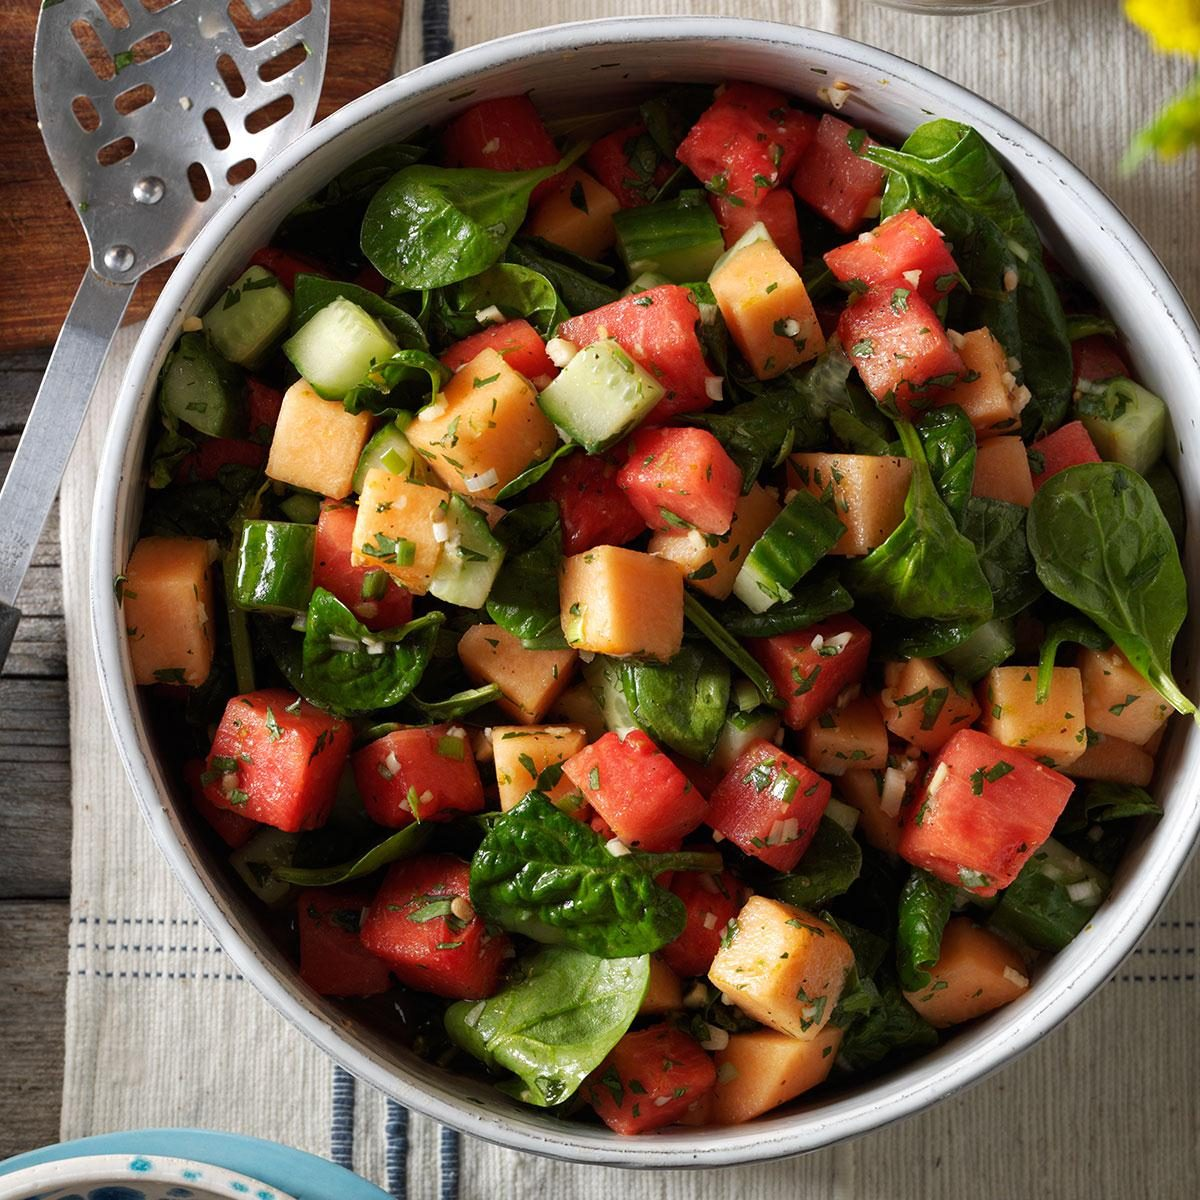 Hawaii: Watermelon and Spinach Salad